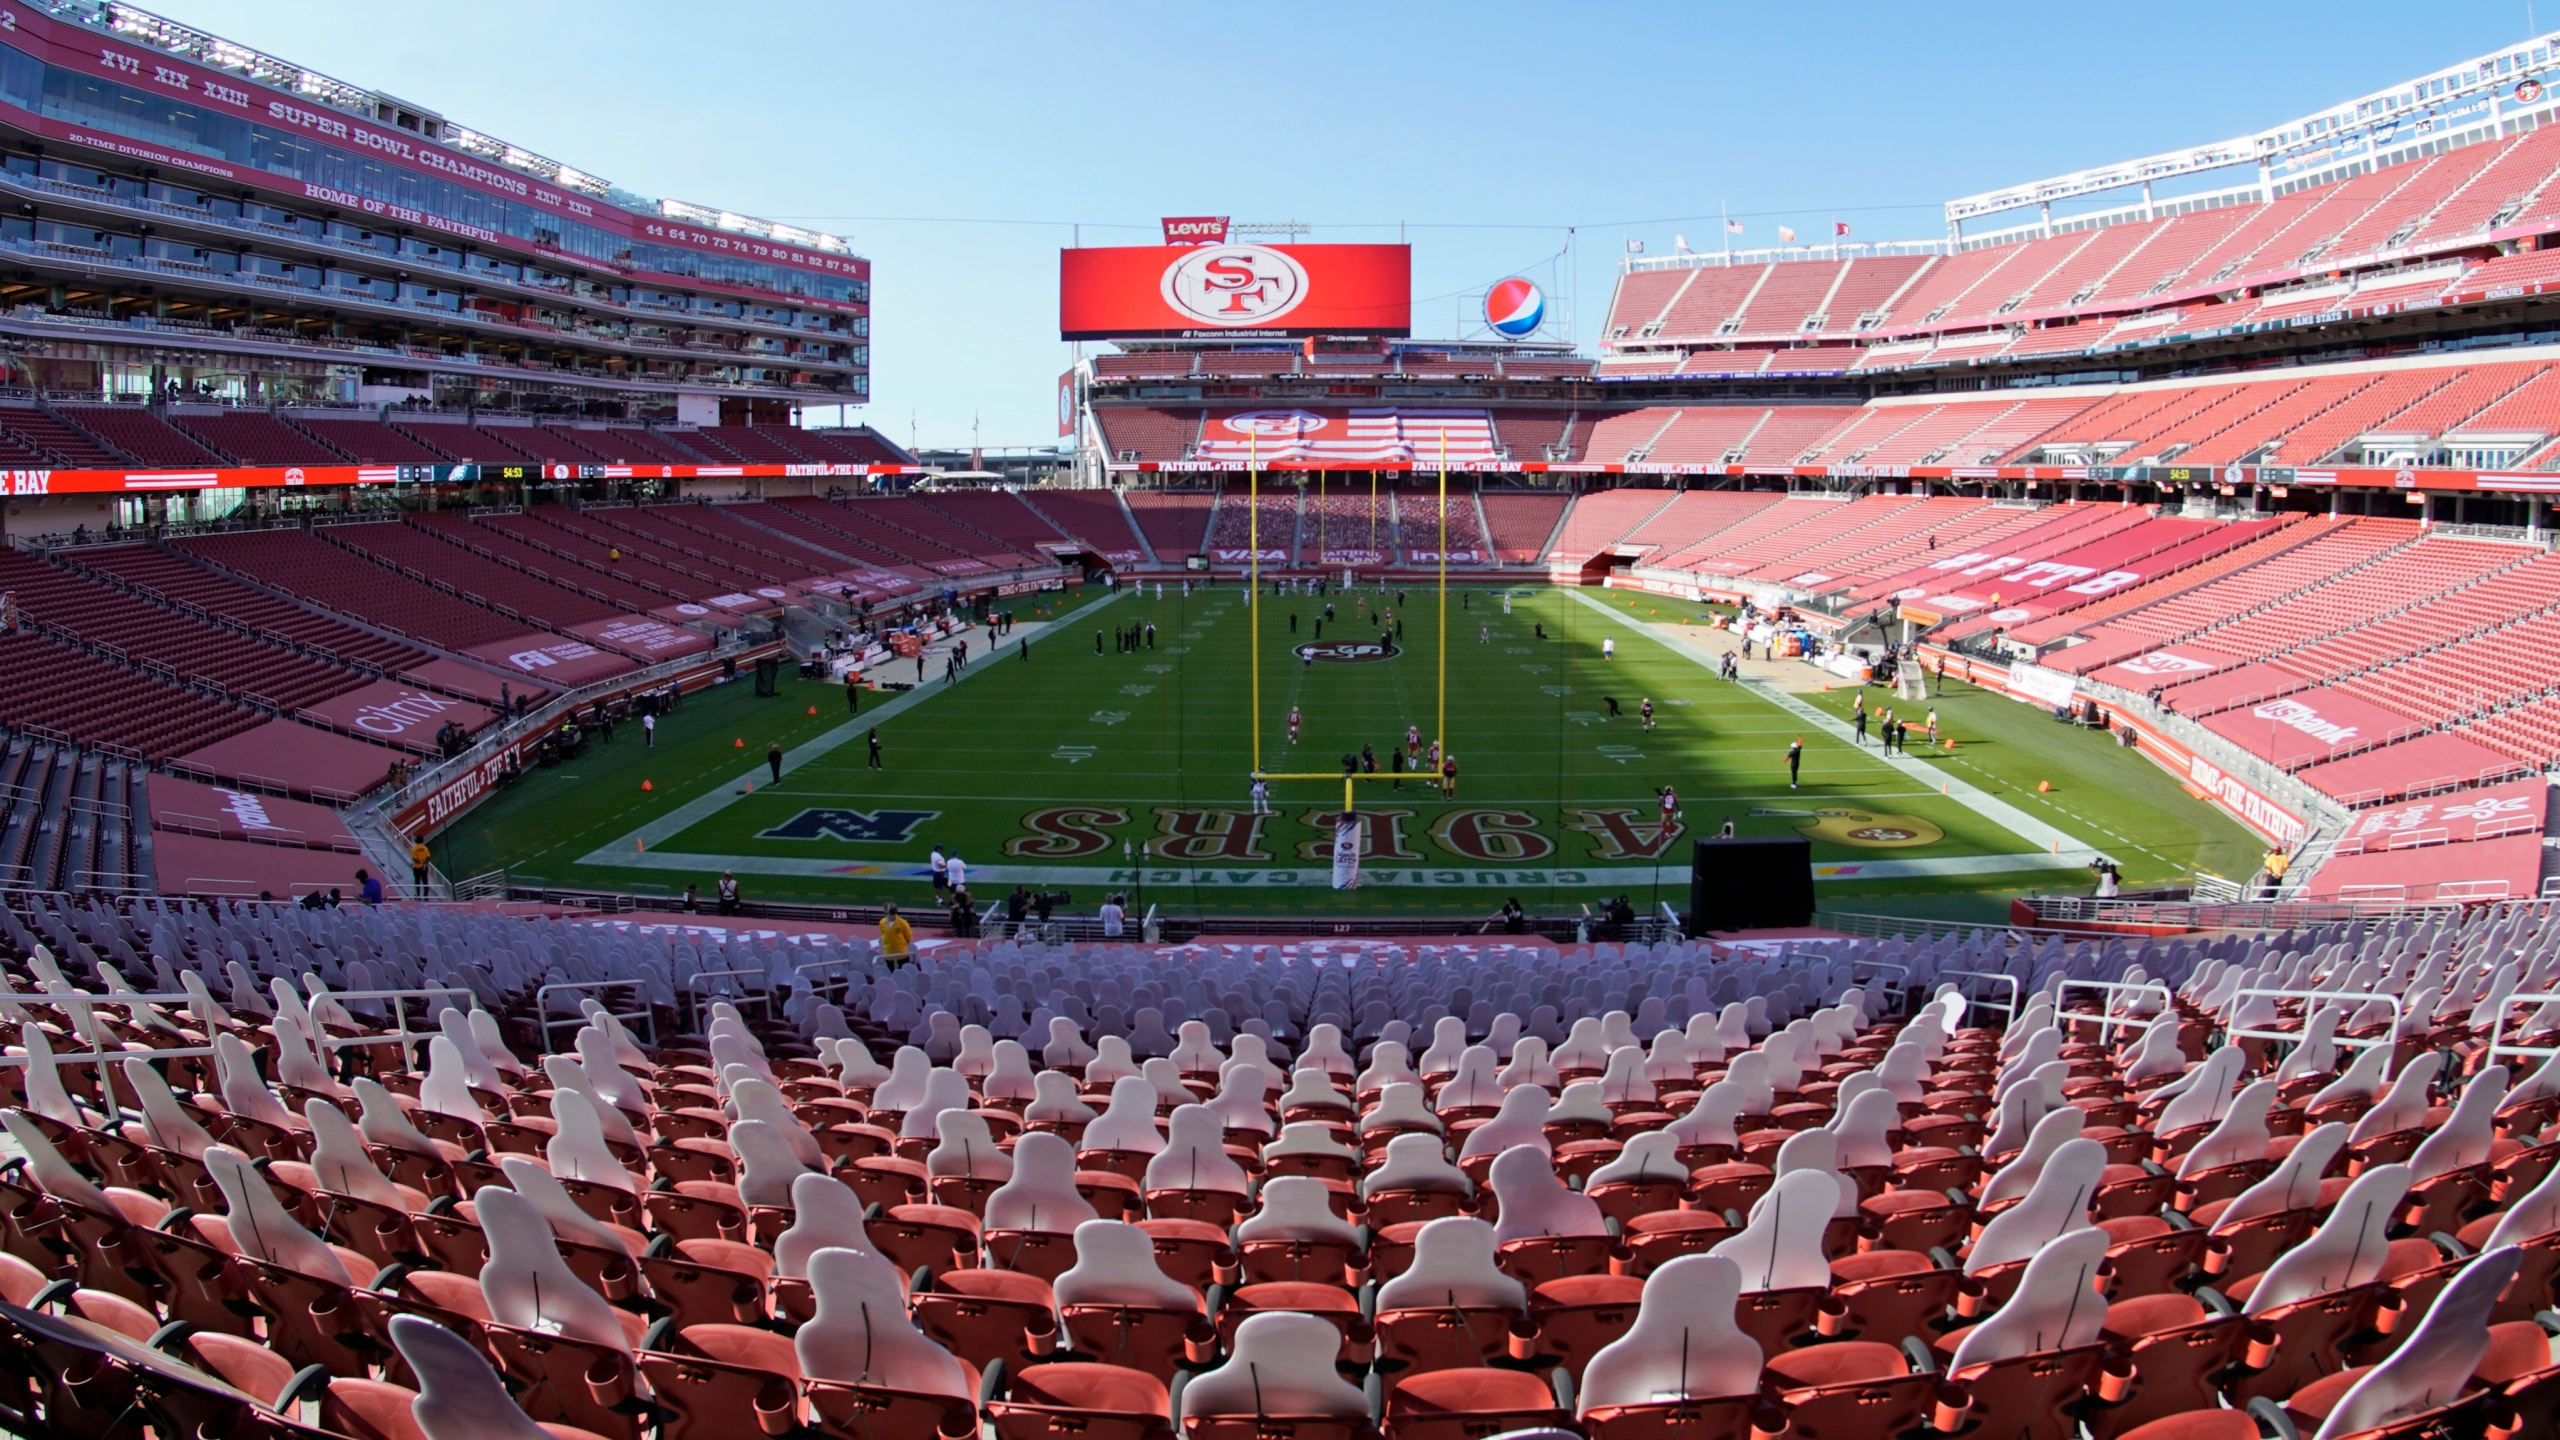 This Oct. 4, 2020, file photo, taken with a fisheye lens, shows an empty Levi's Stadium before an NFL football game between the San Francisco 49ers and the Philadelphia Eagles in Santa Clara, Calif. The 49ers and other teams may need to find a temporary new home after Santa Clara County on Nov. 28, 2020, banned all contact sports from holding games and practices for the next three weeks. County officials issued the directives in response to rising cases of the coronavirus in the area. The rules take effect Monday and will last for three weeks. (AP Photo/Tony Avelar, File)